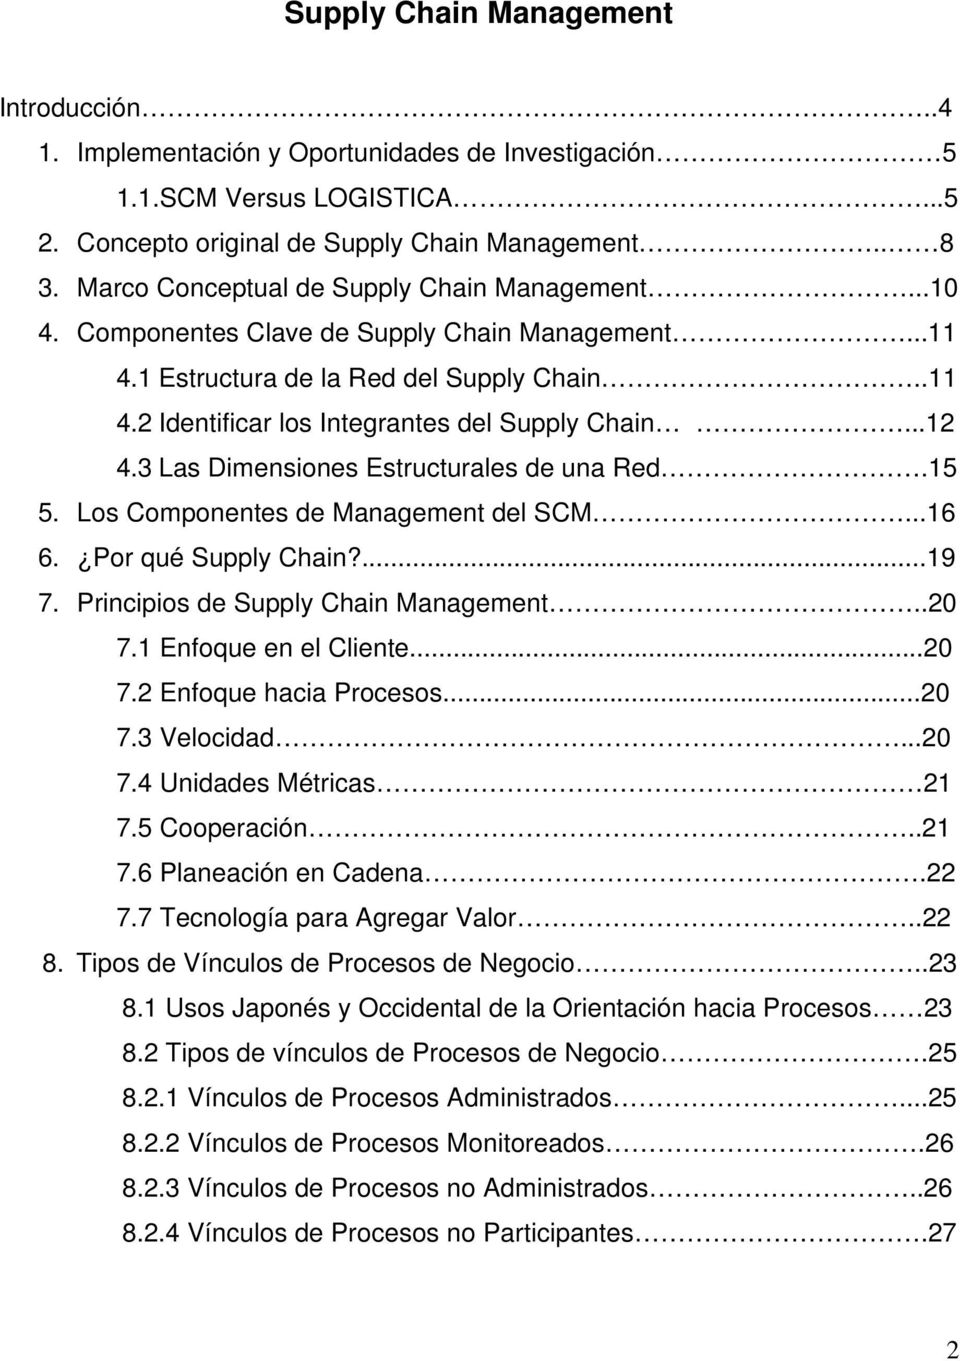 ..12 4.3 Las Dimensiones Estructurales de una Red.15 5. Los Componentes de Management del SCM...16 6. Por qué Supply Chain?...19 7. Principios de Supply Chain Management..20 7.1 Enfoque en el Cliente.